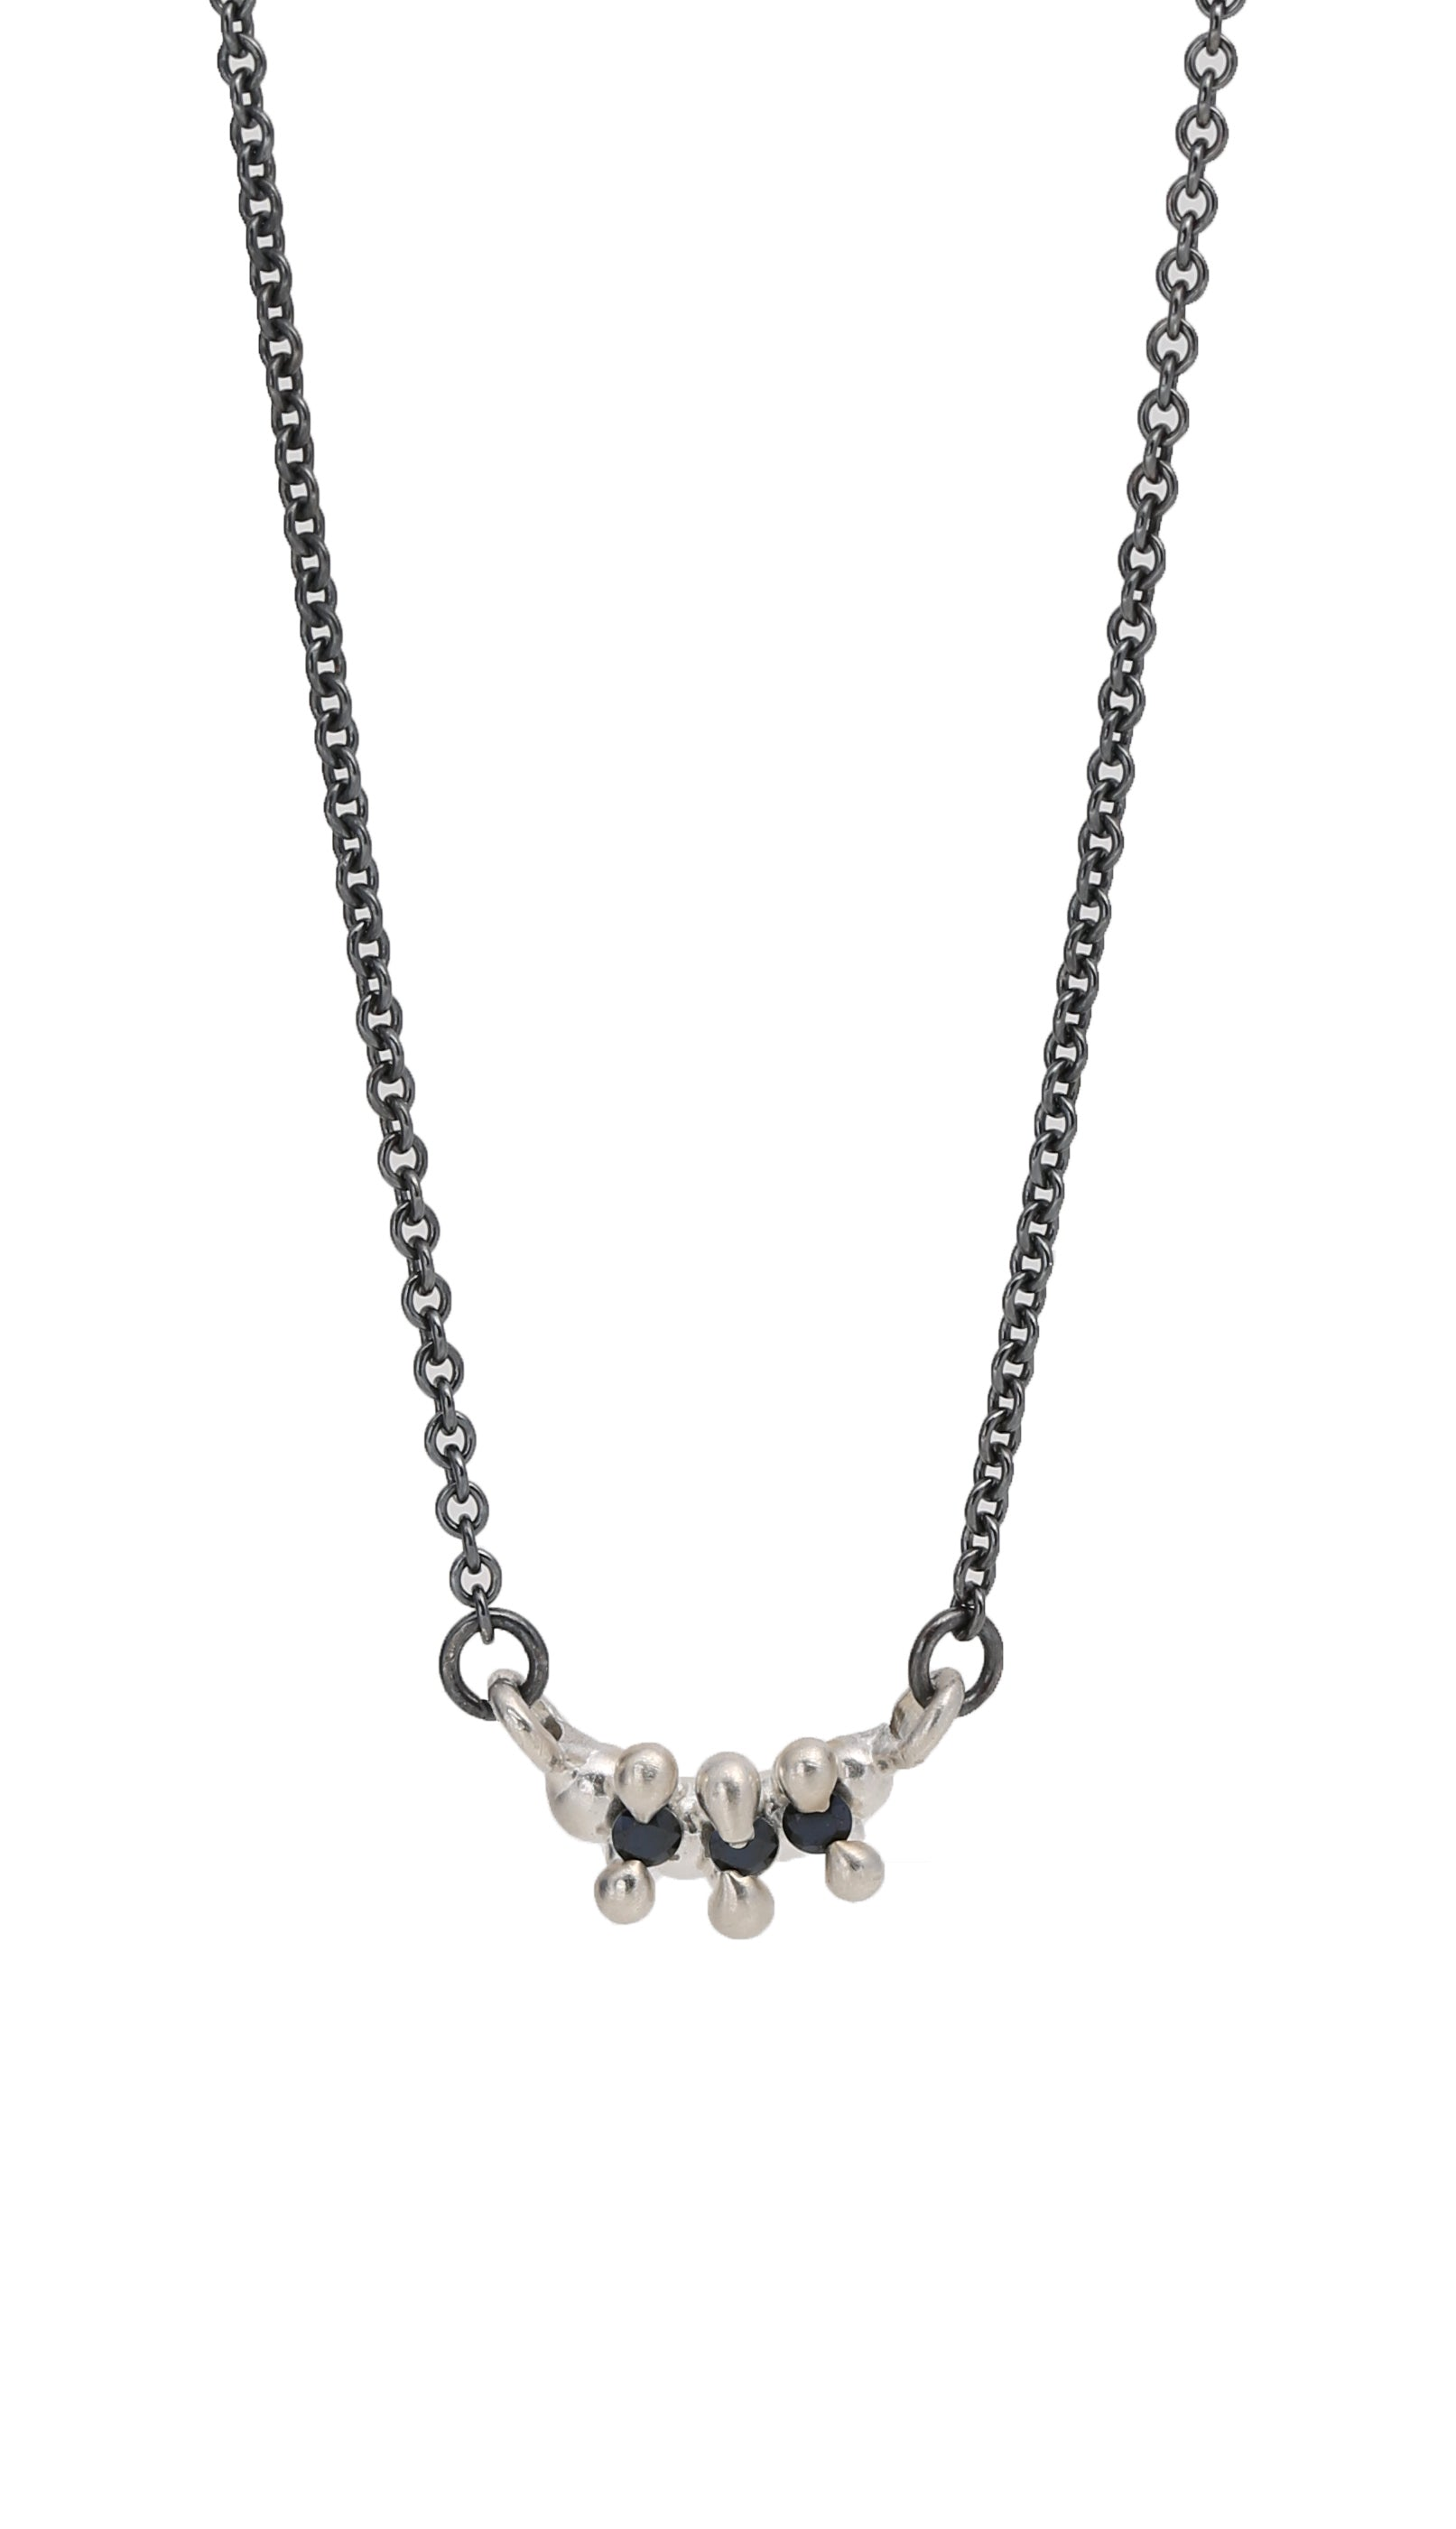 Limited Edition 3 Stone Bar Necklace Black Spinel